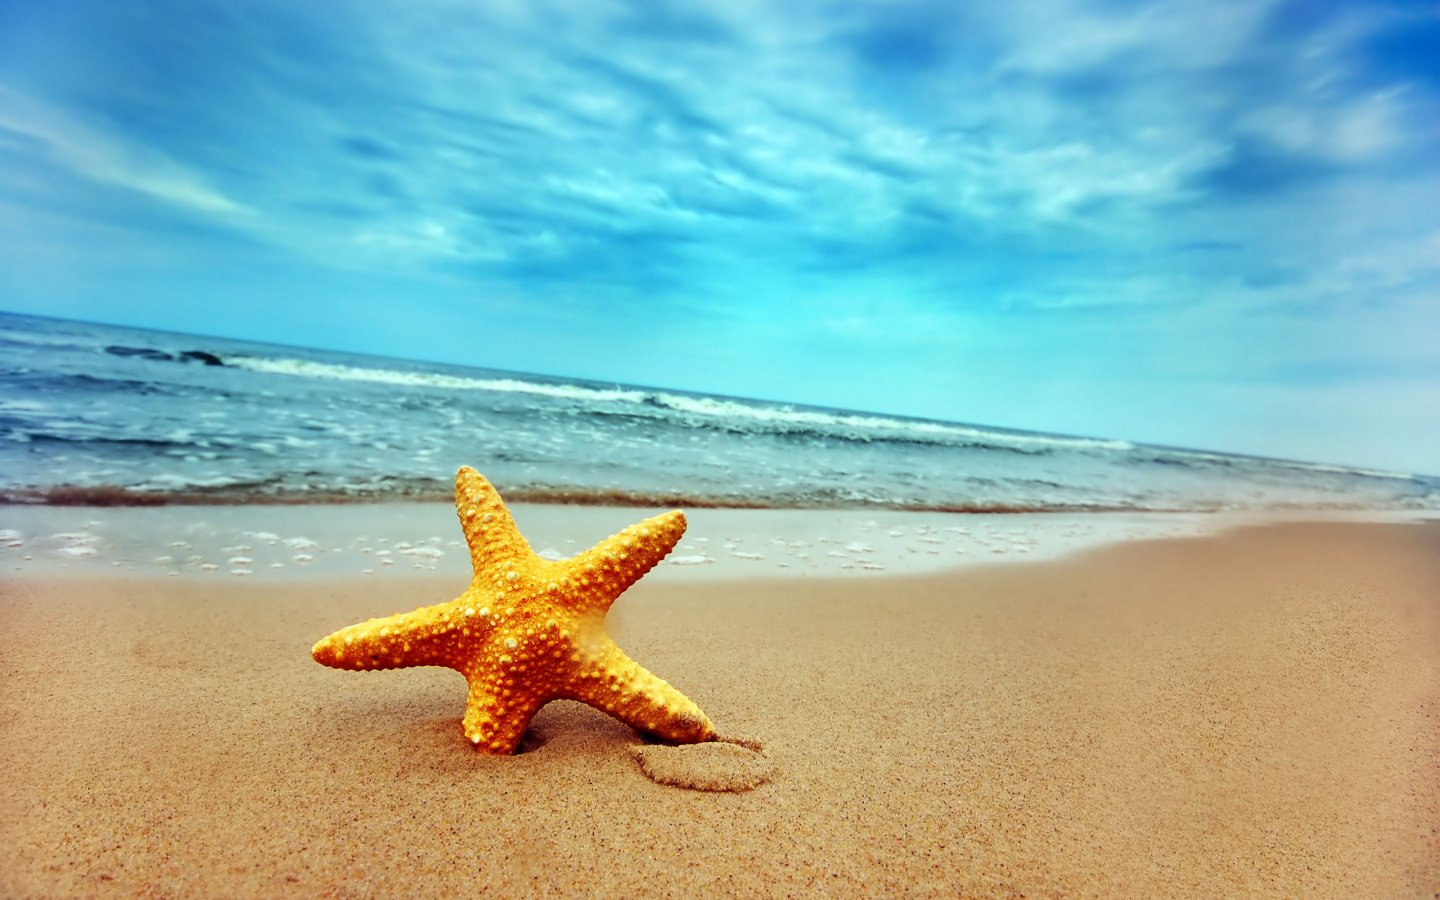 Summer at Lonely Beach   HD Wallpapers Widescreen   1440x900 1440x900